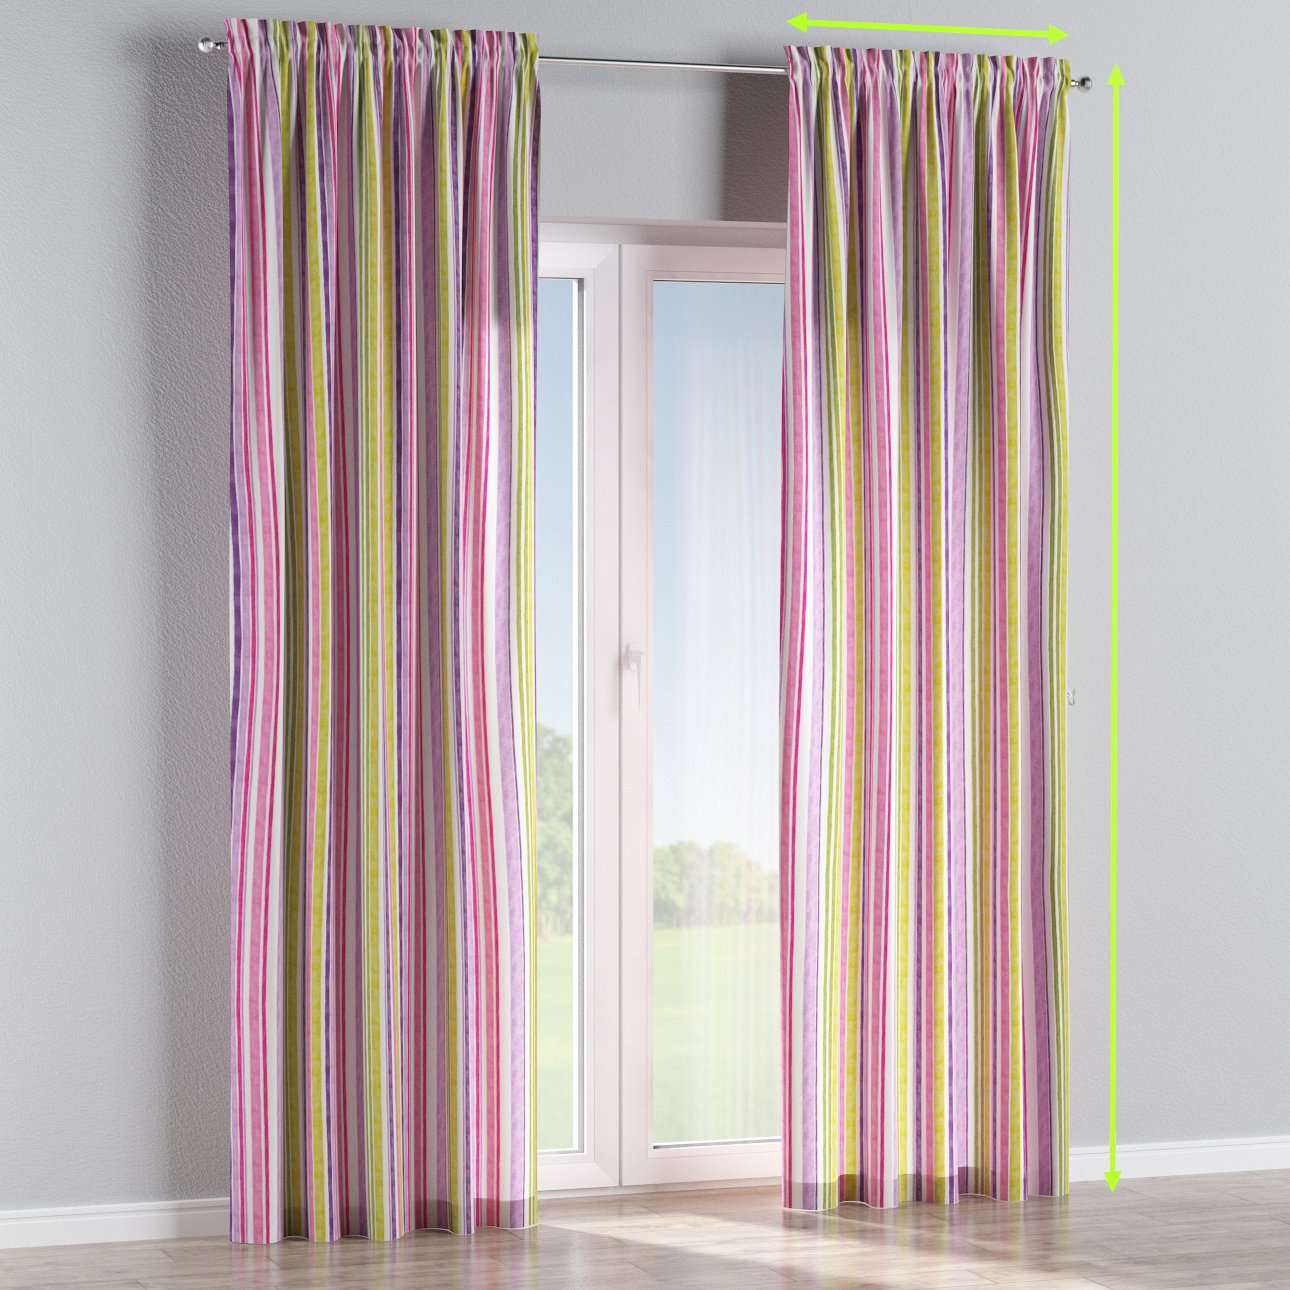 Slot and frill lined curtains in collection Monet, fabric: 140-01